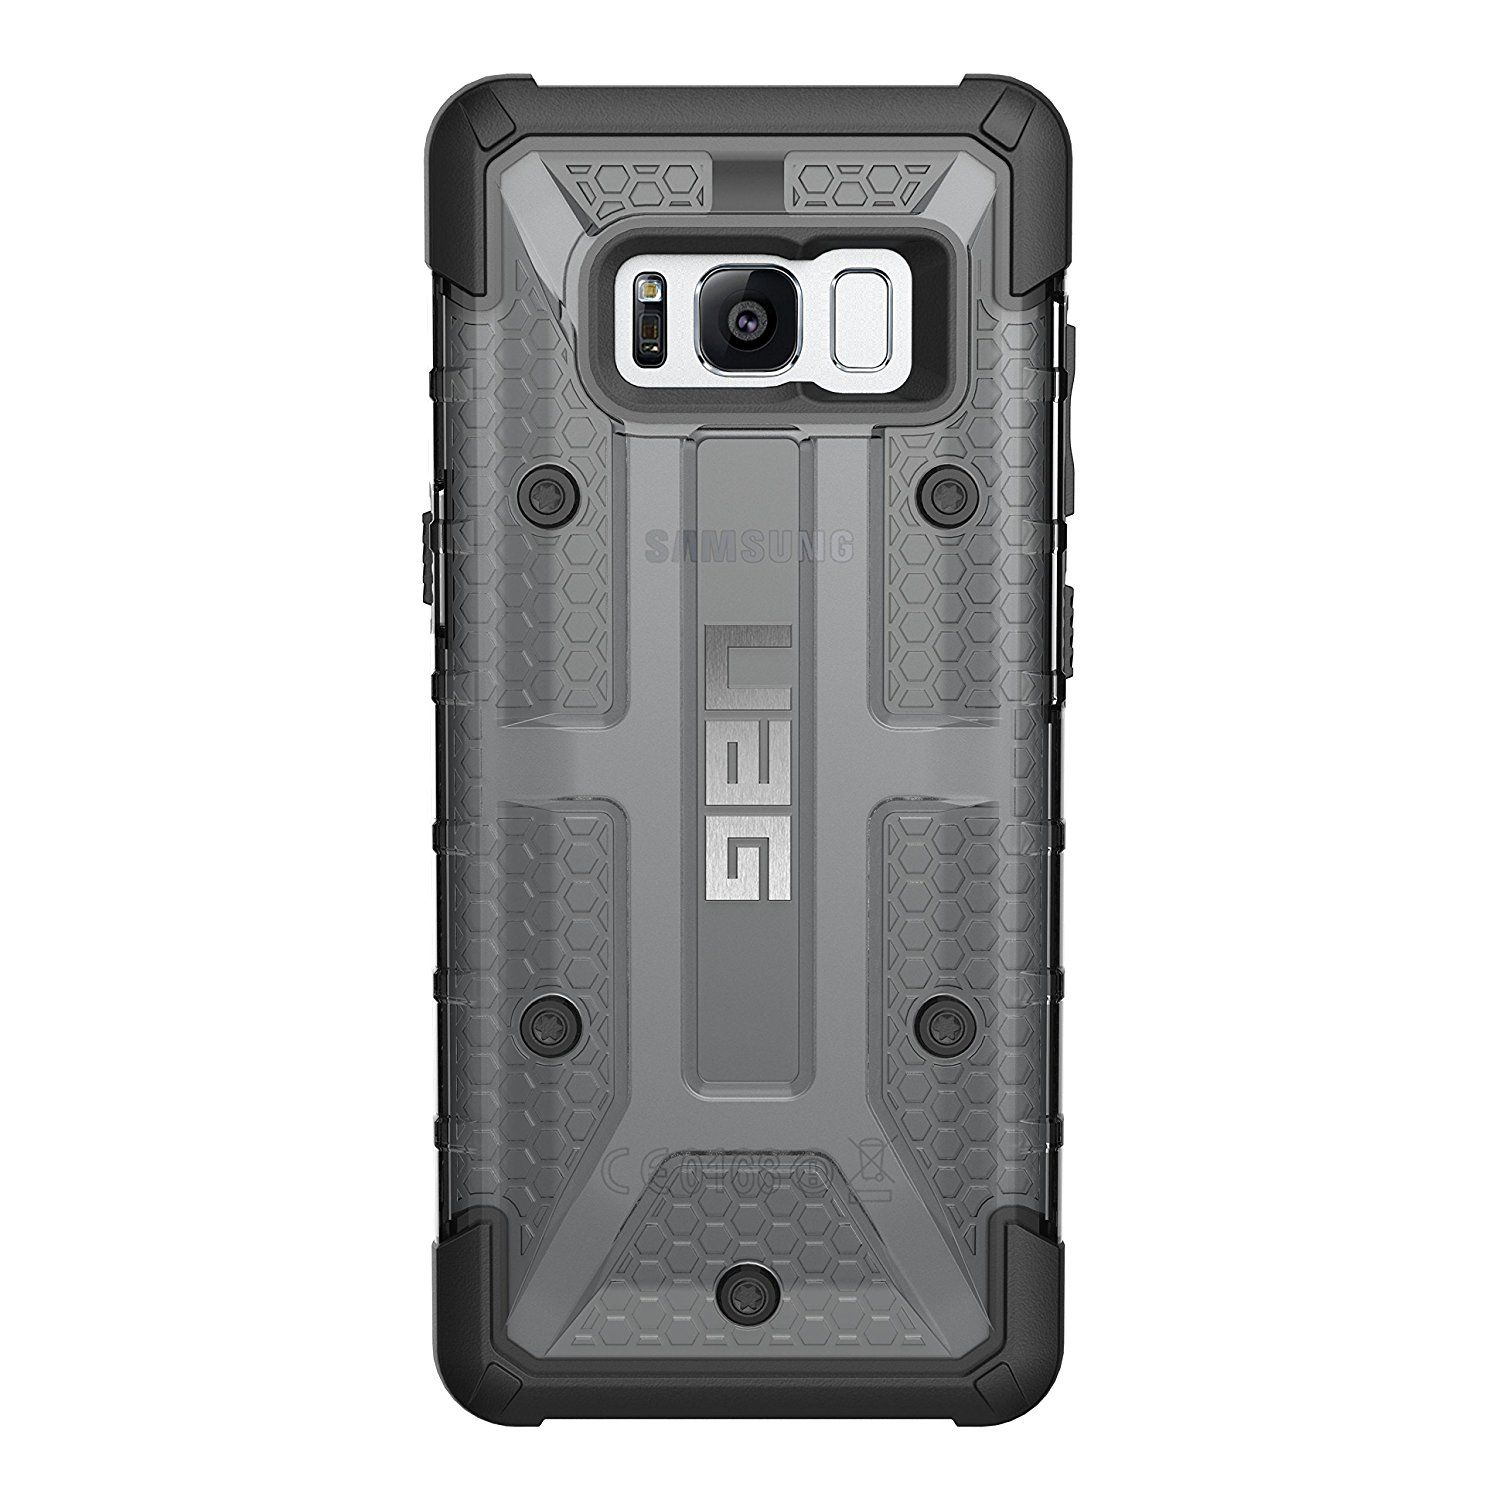 17 Best Samsung Galaxy S8 Cases in 2018 Galaxy S8 and Galaxy S8 Phone Cases